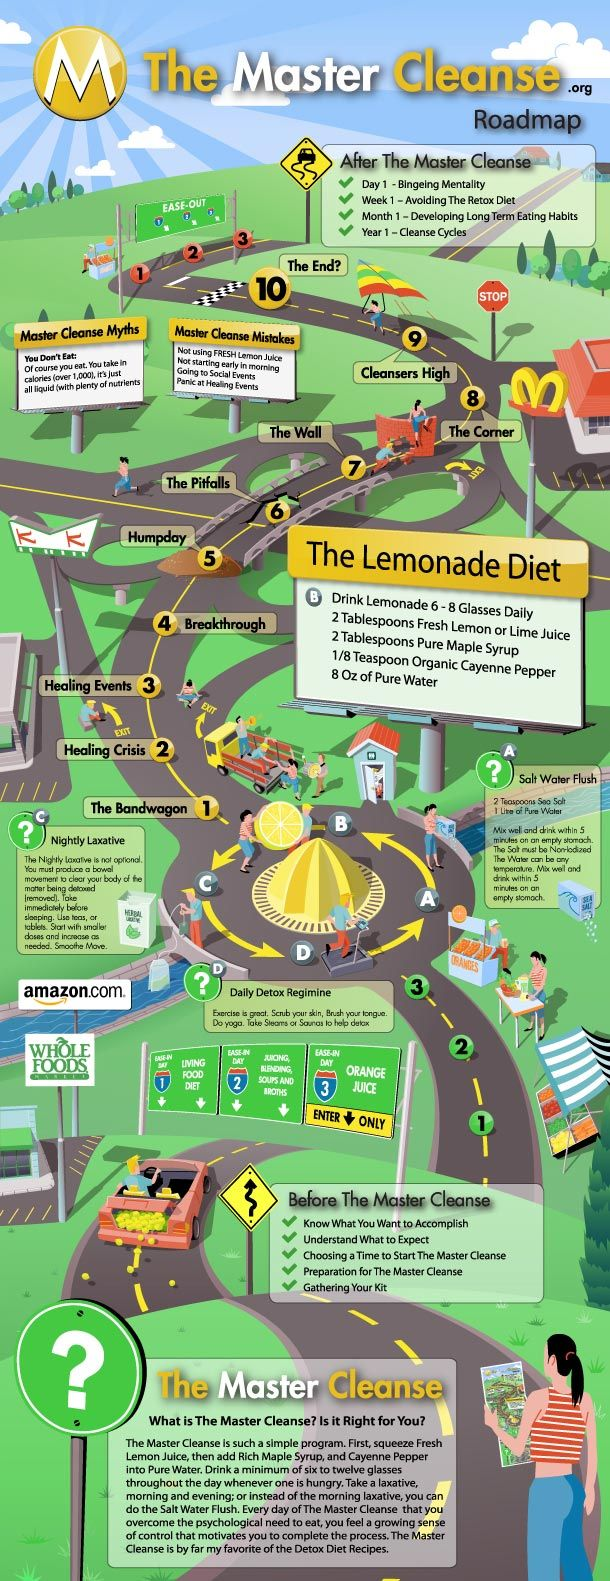 The Master Cleanse Roadmap